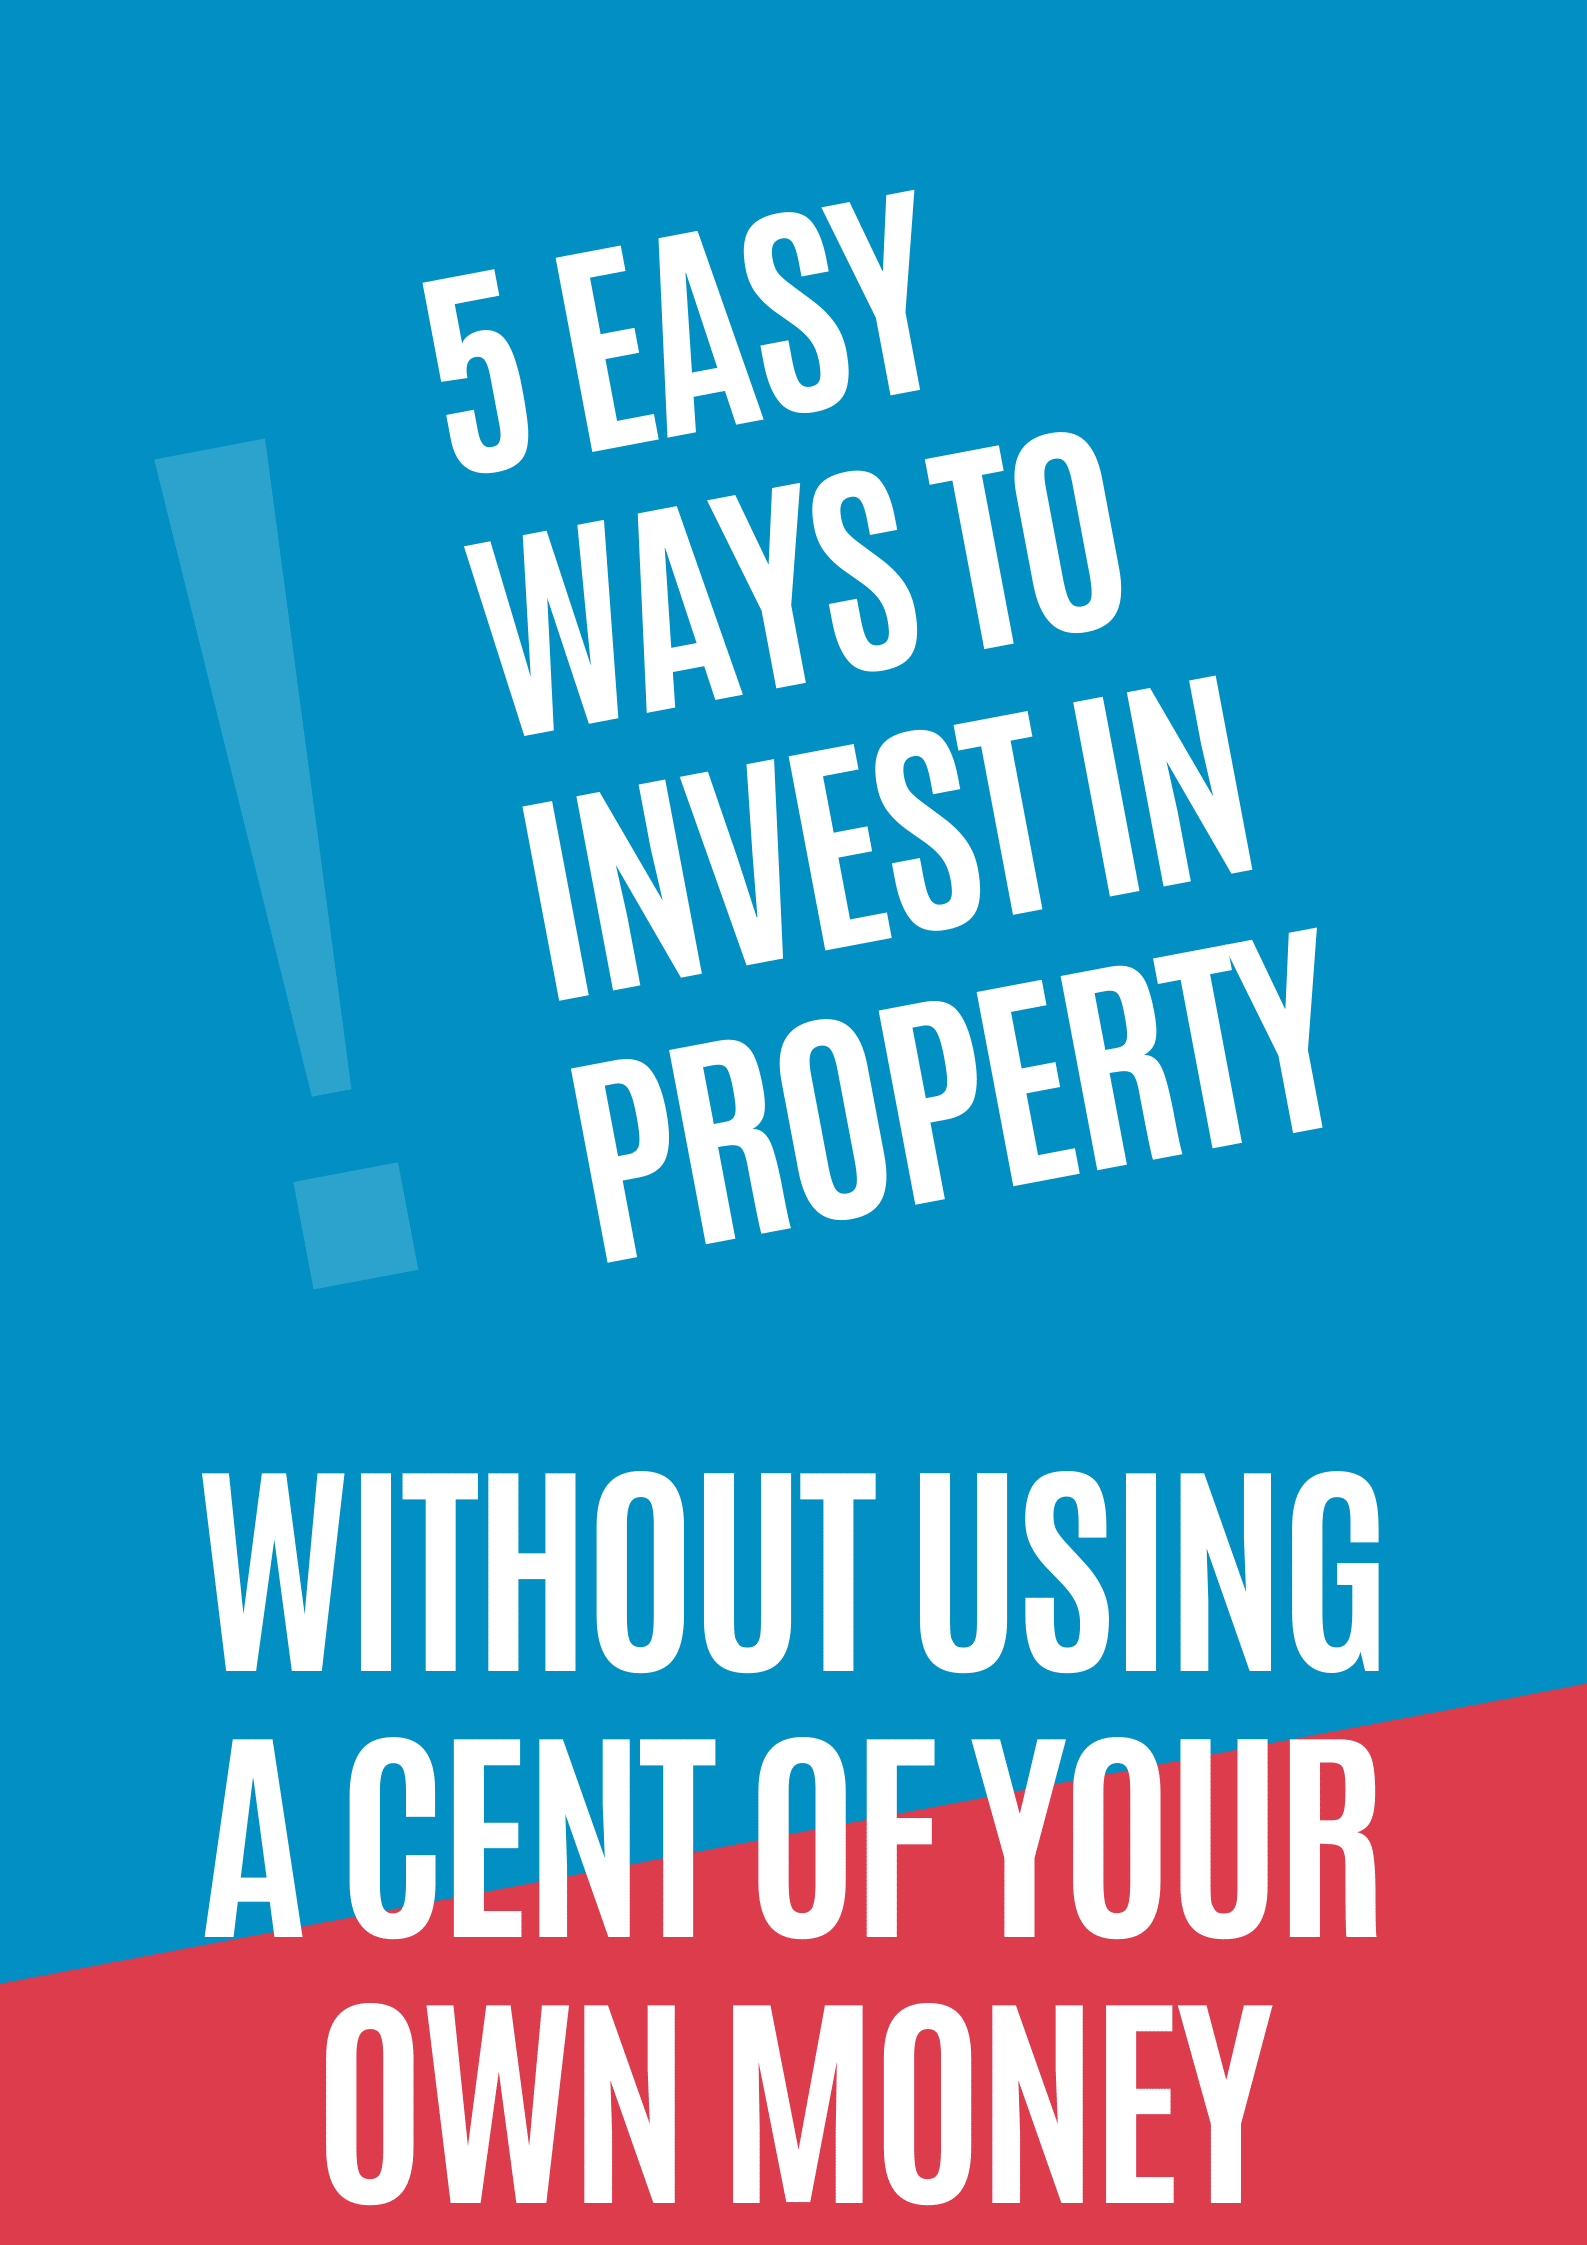 invest in property without your own money